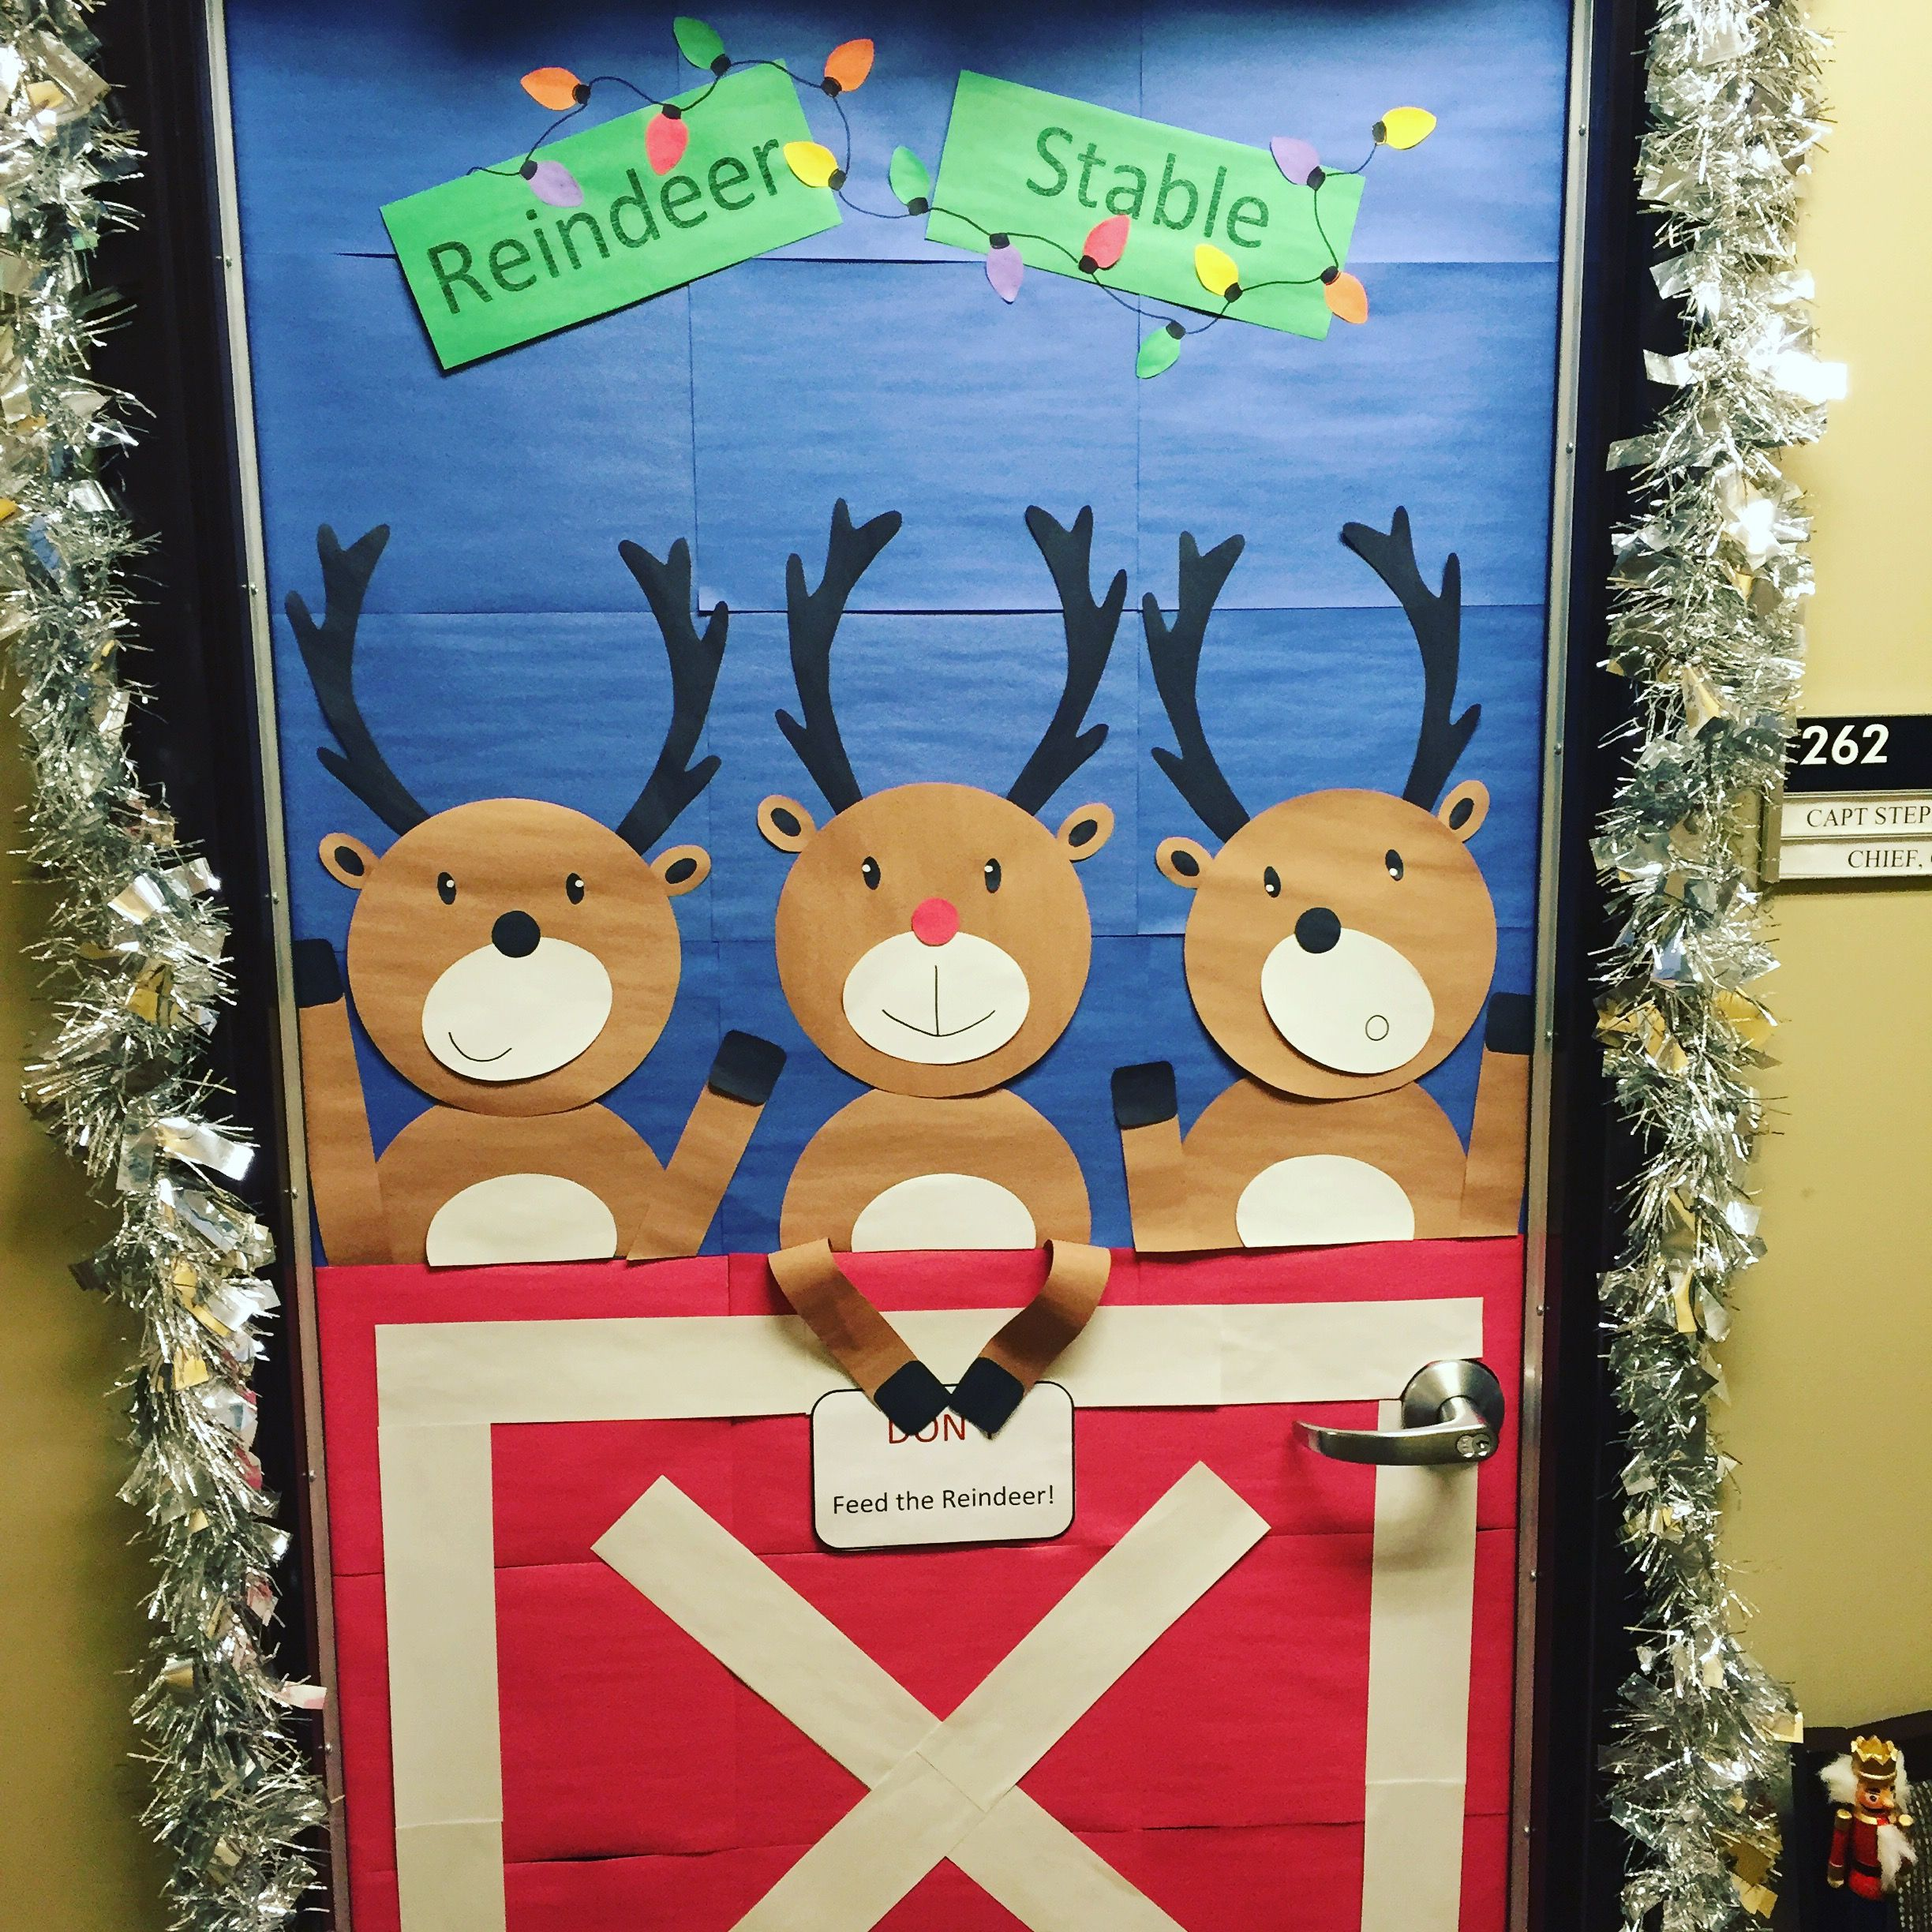 Reindeer Christmas door decoration with Rudolph at the